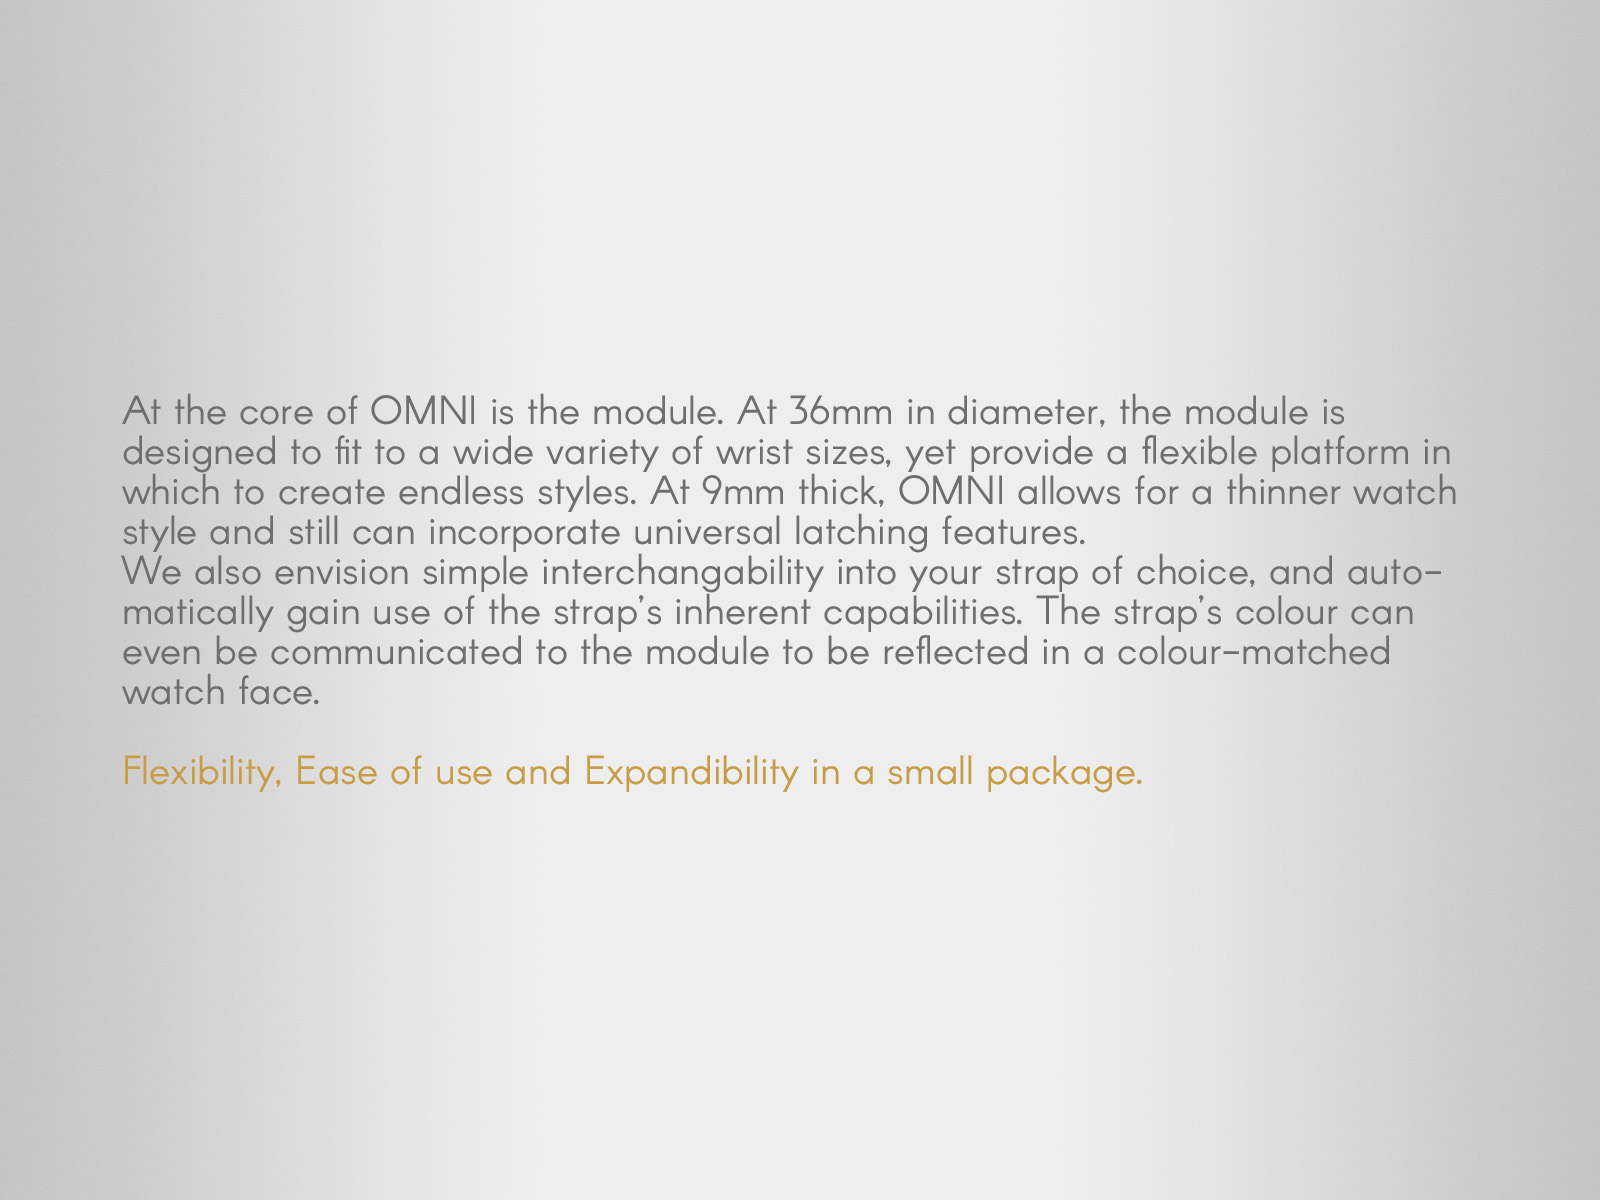 A statement about the core Omni module